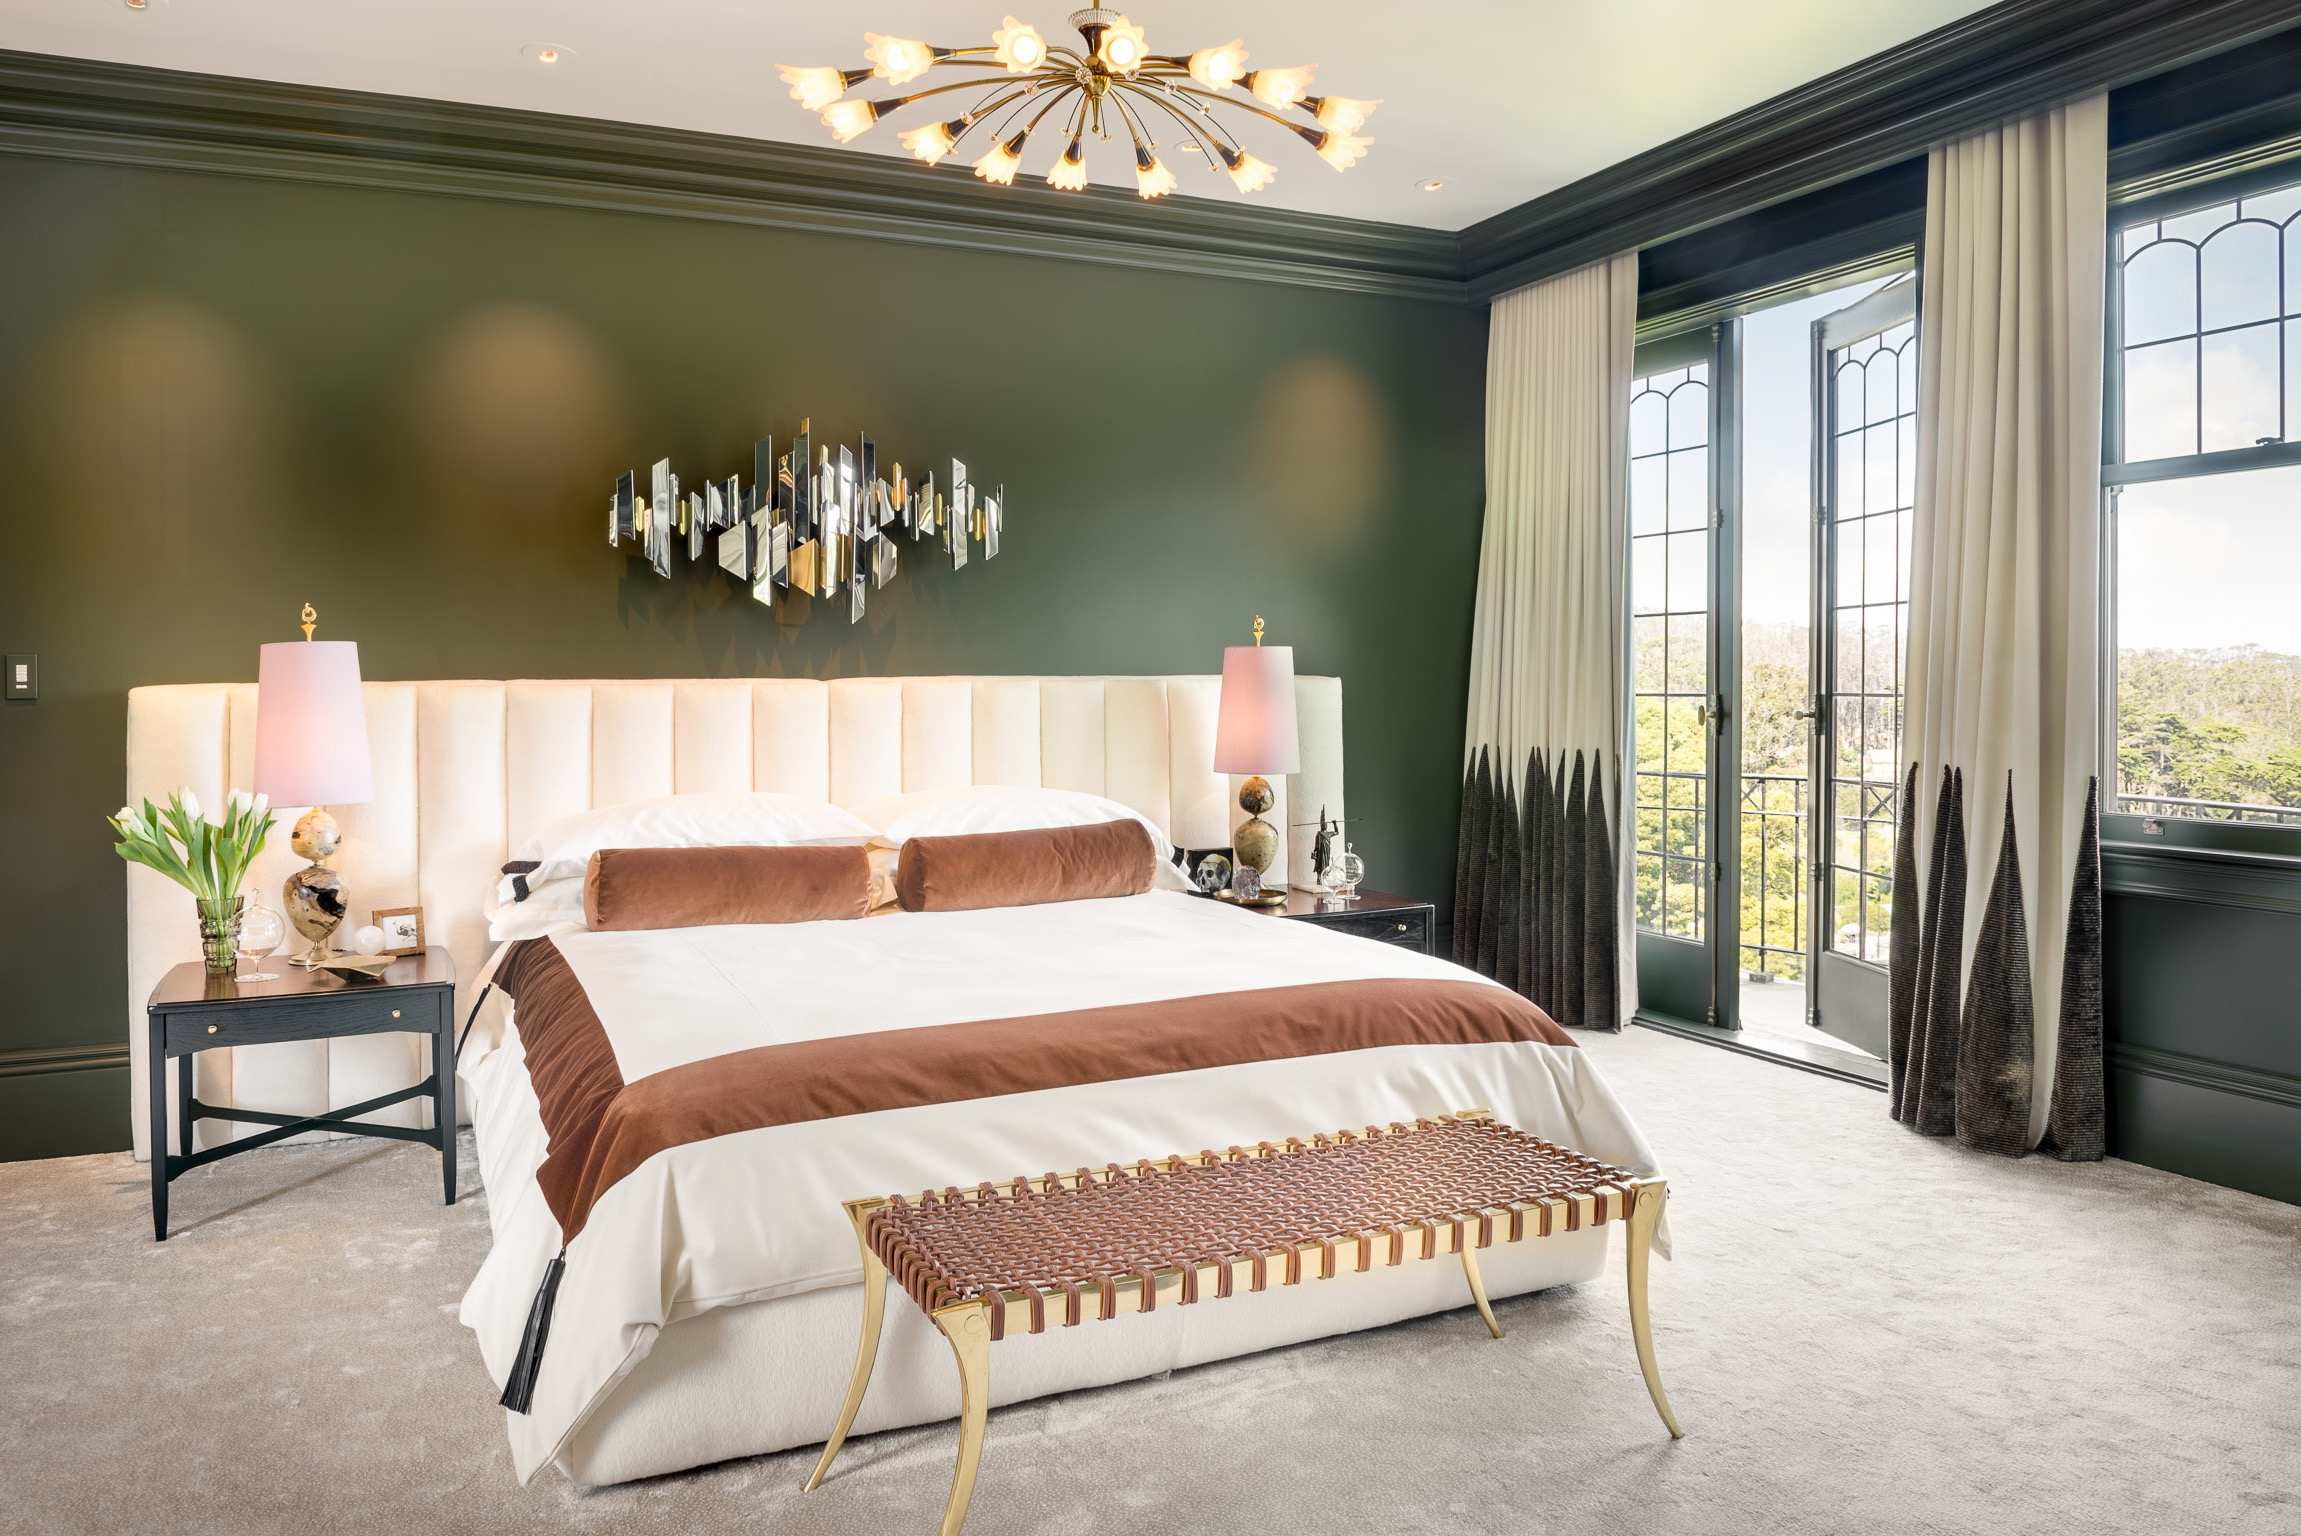 Hunter Green Master Bedroom Balances Masculine With Feminine (Image 14 of 28)